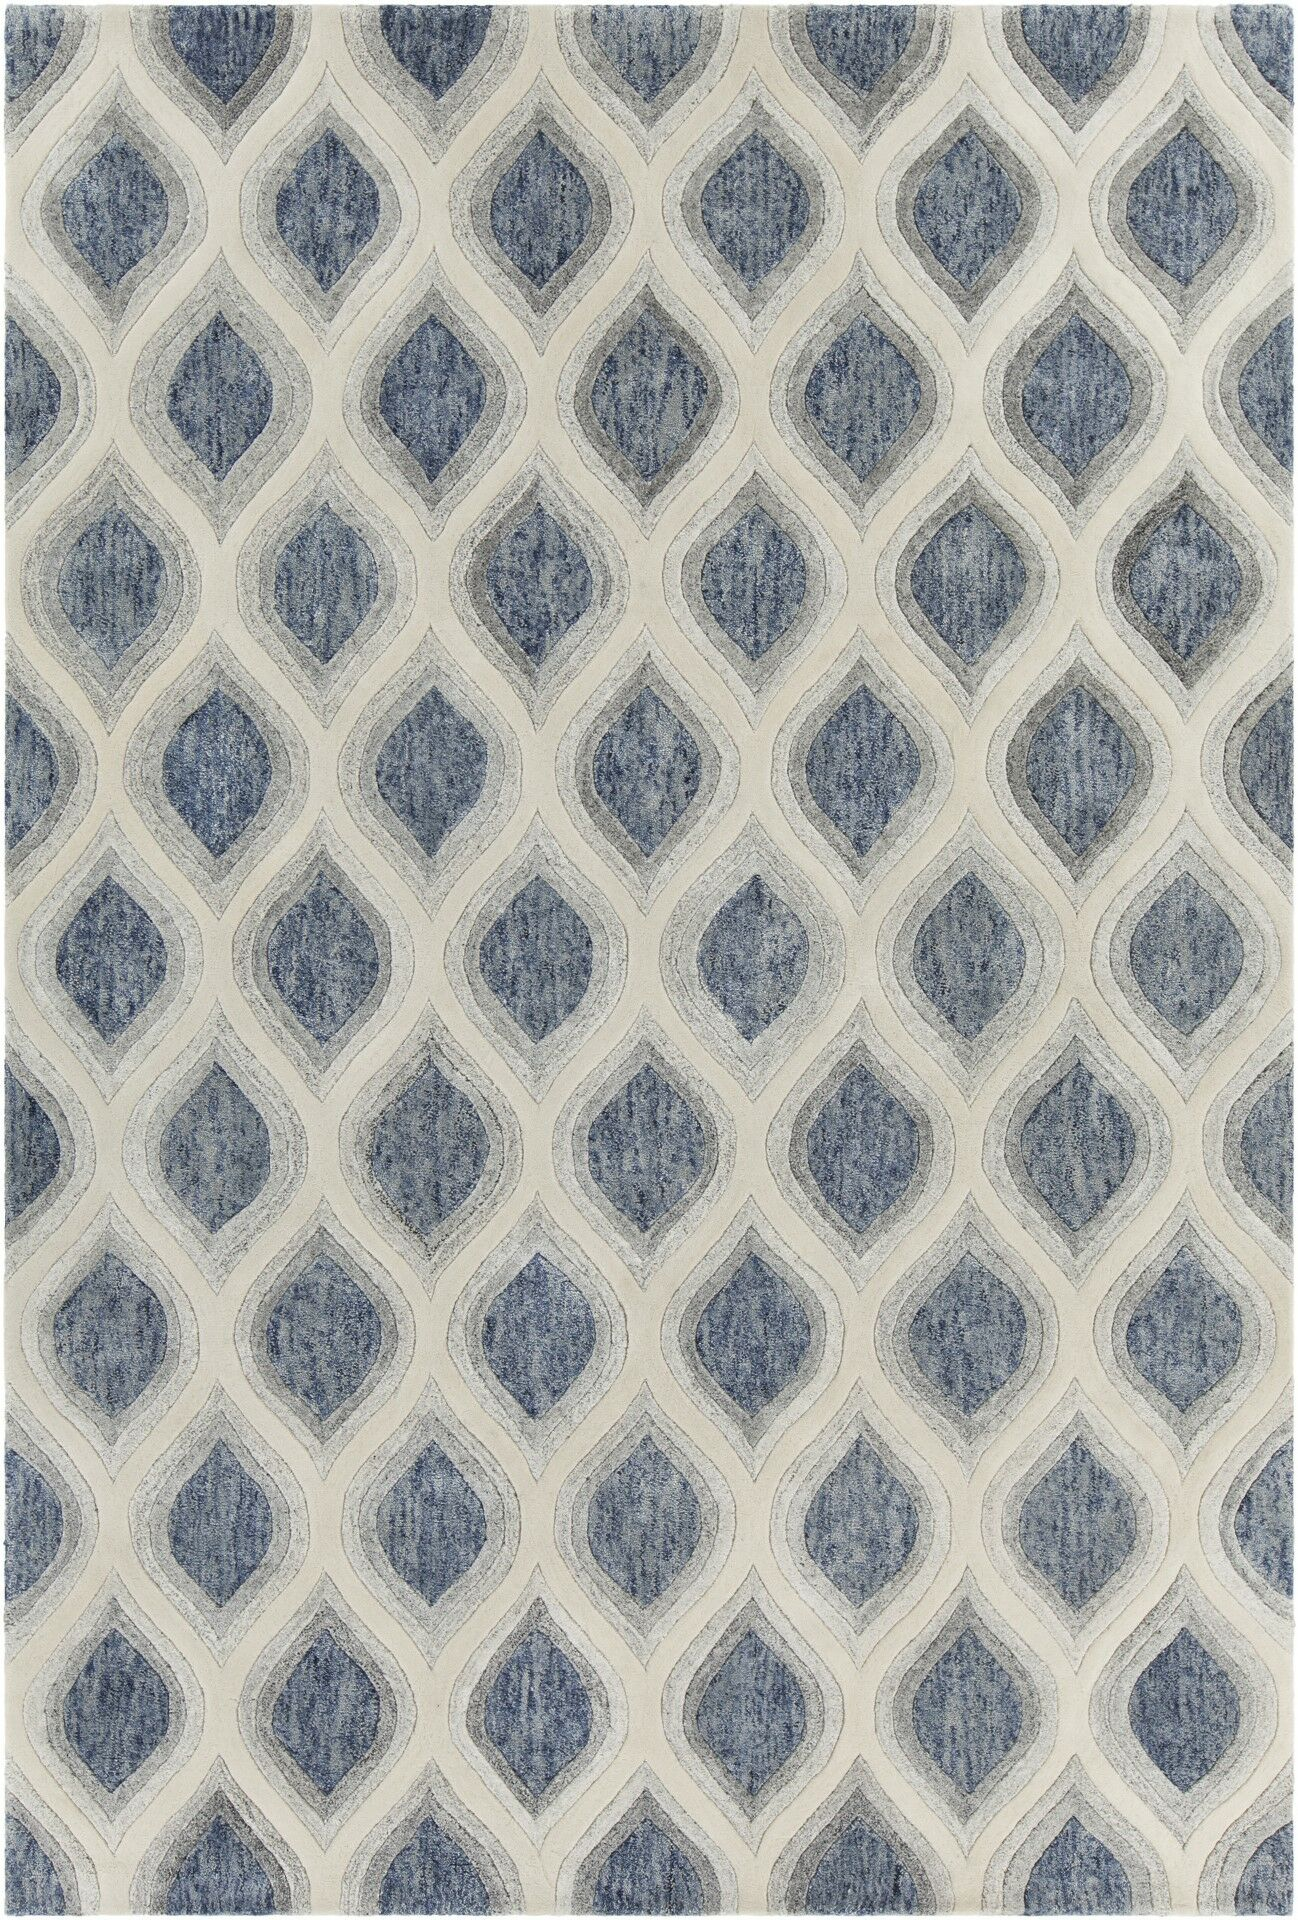 Delong Patterned Contemporary Blue/Cream Area Rug Rug Size: 5' x 7'6